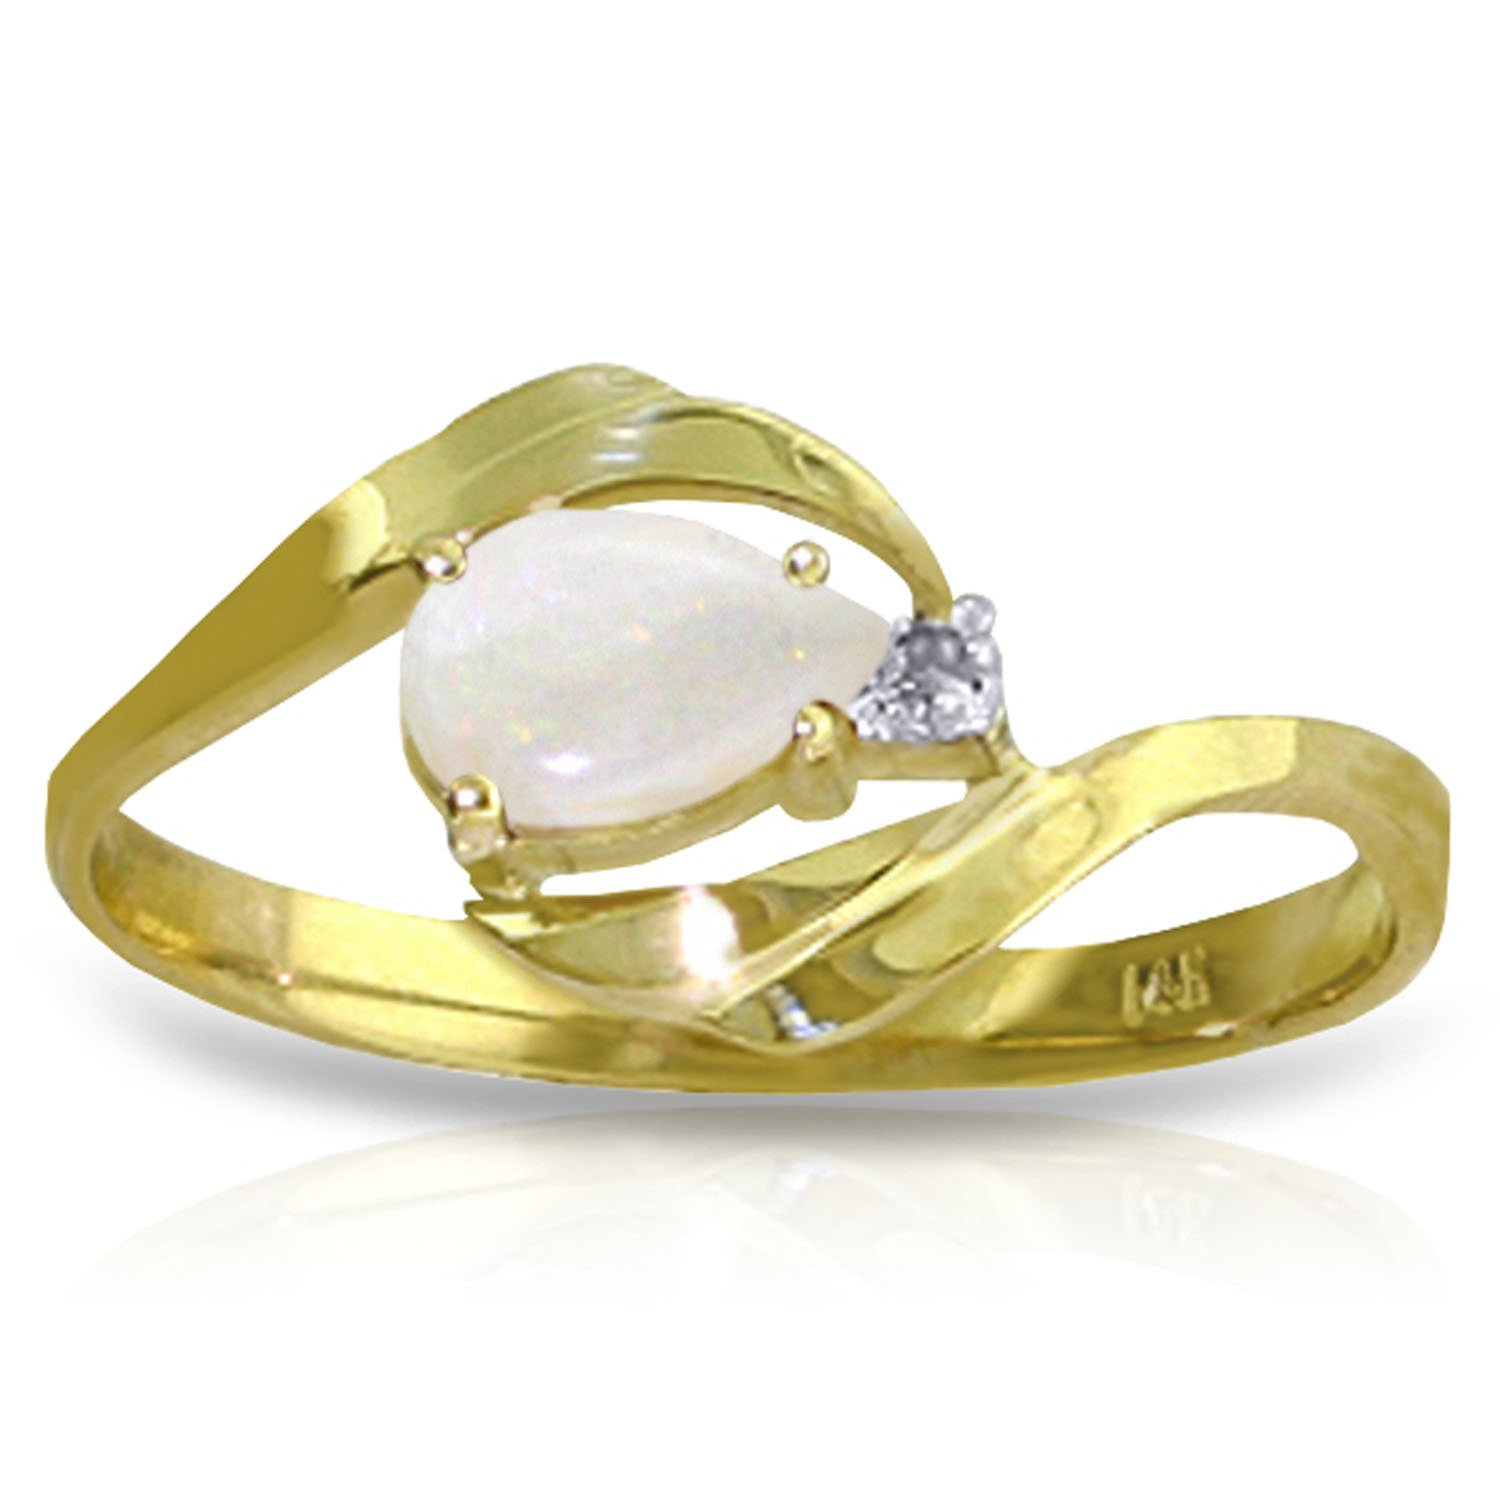 0.26 Carat 14k Solid Gold Ring with Natural Diamond and Pear-shaped Opal - Size 8.5